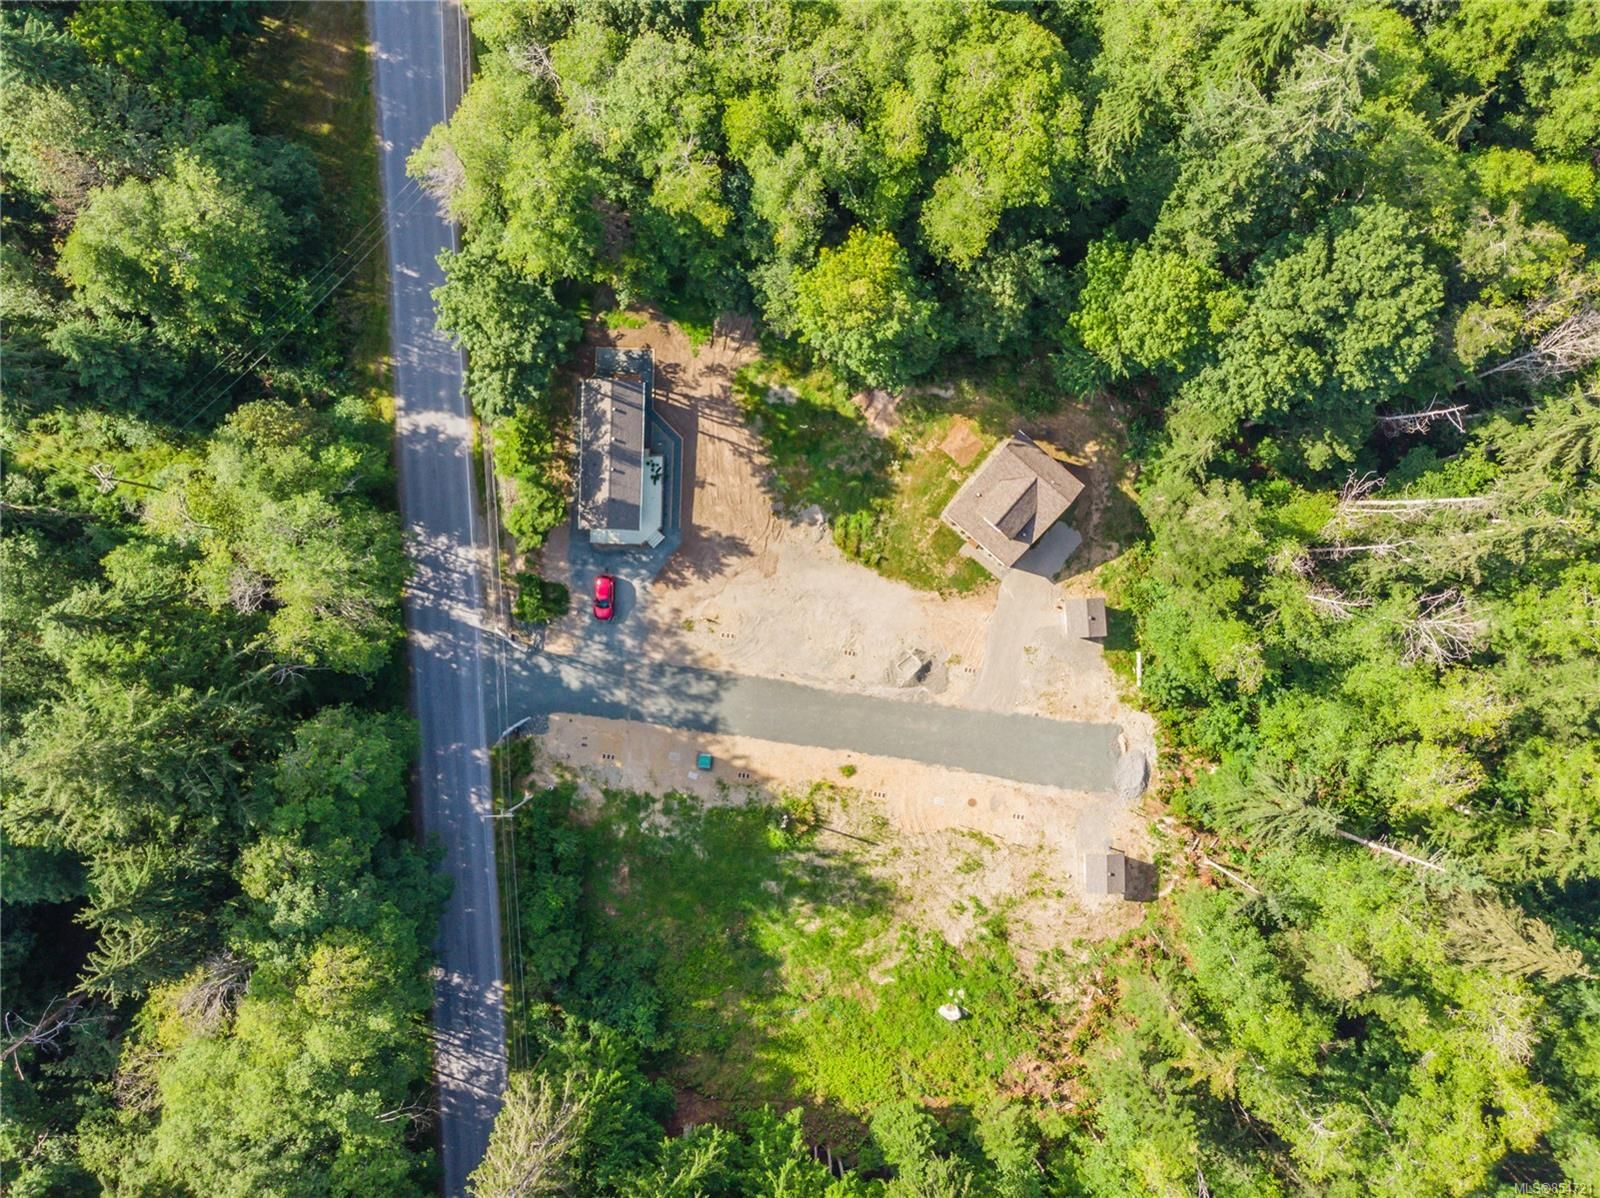 Main Photo: 6 638 Green Rd in : Isl Quadra Island Land for sale (Islands)  : MLS®# 854721